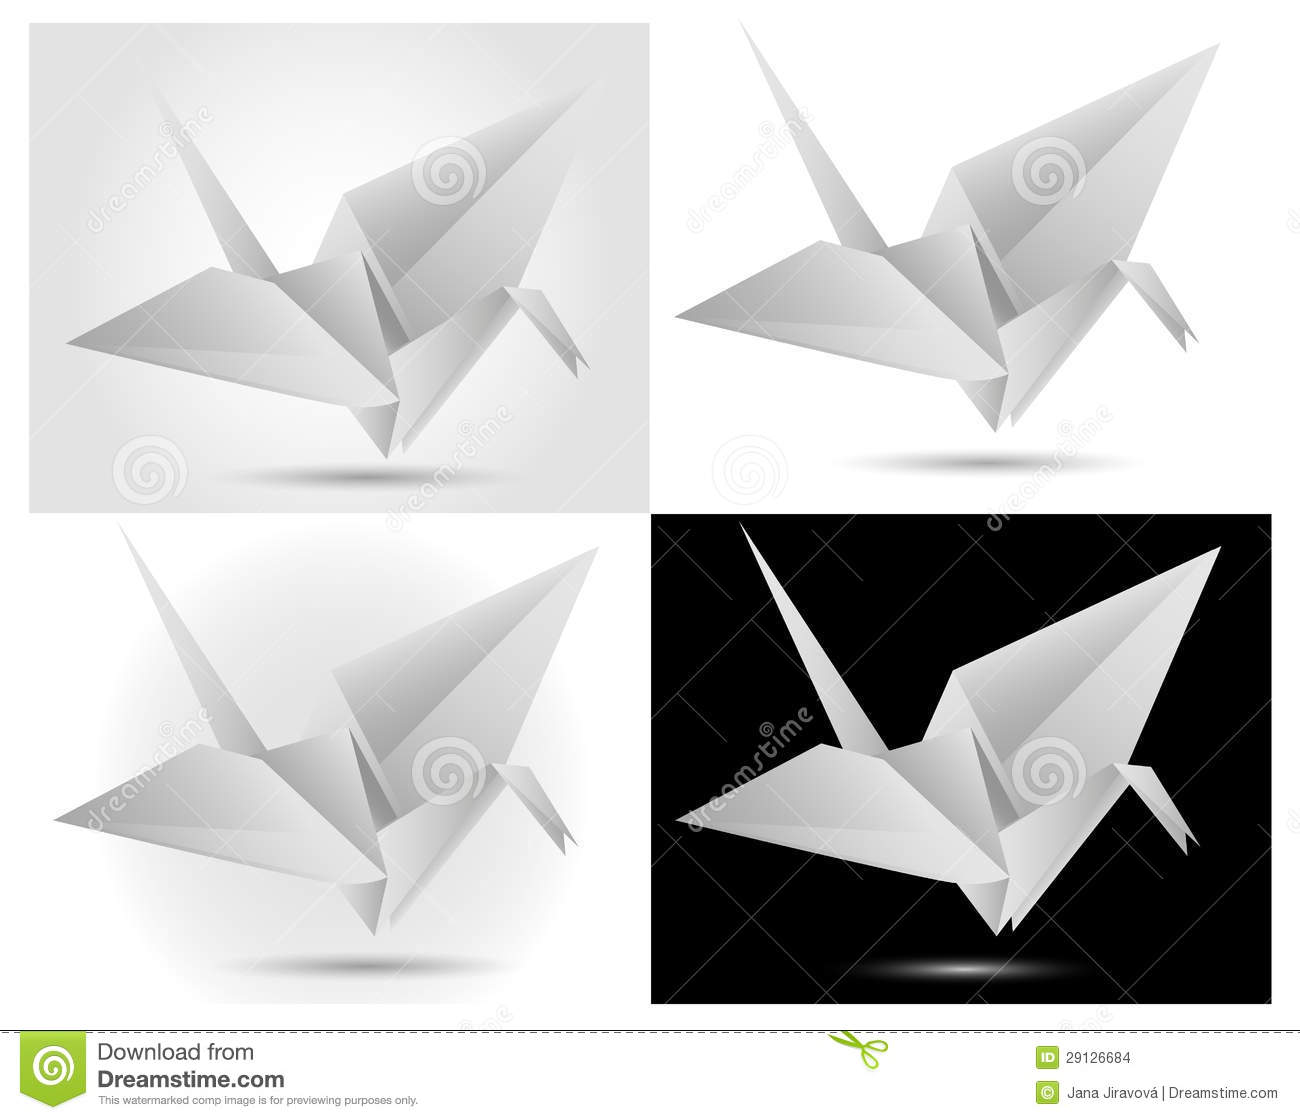 My List of Things to be Happy About (avec images) | Origami ... | 1120x1300